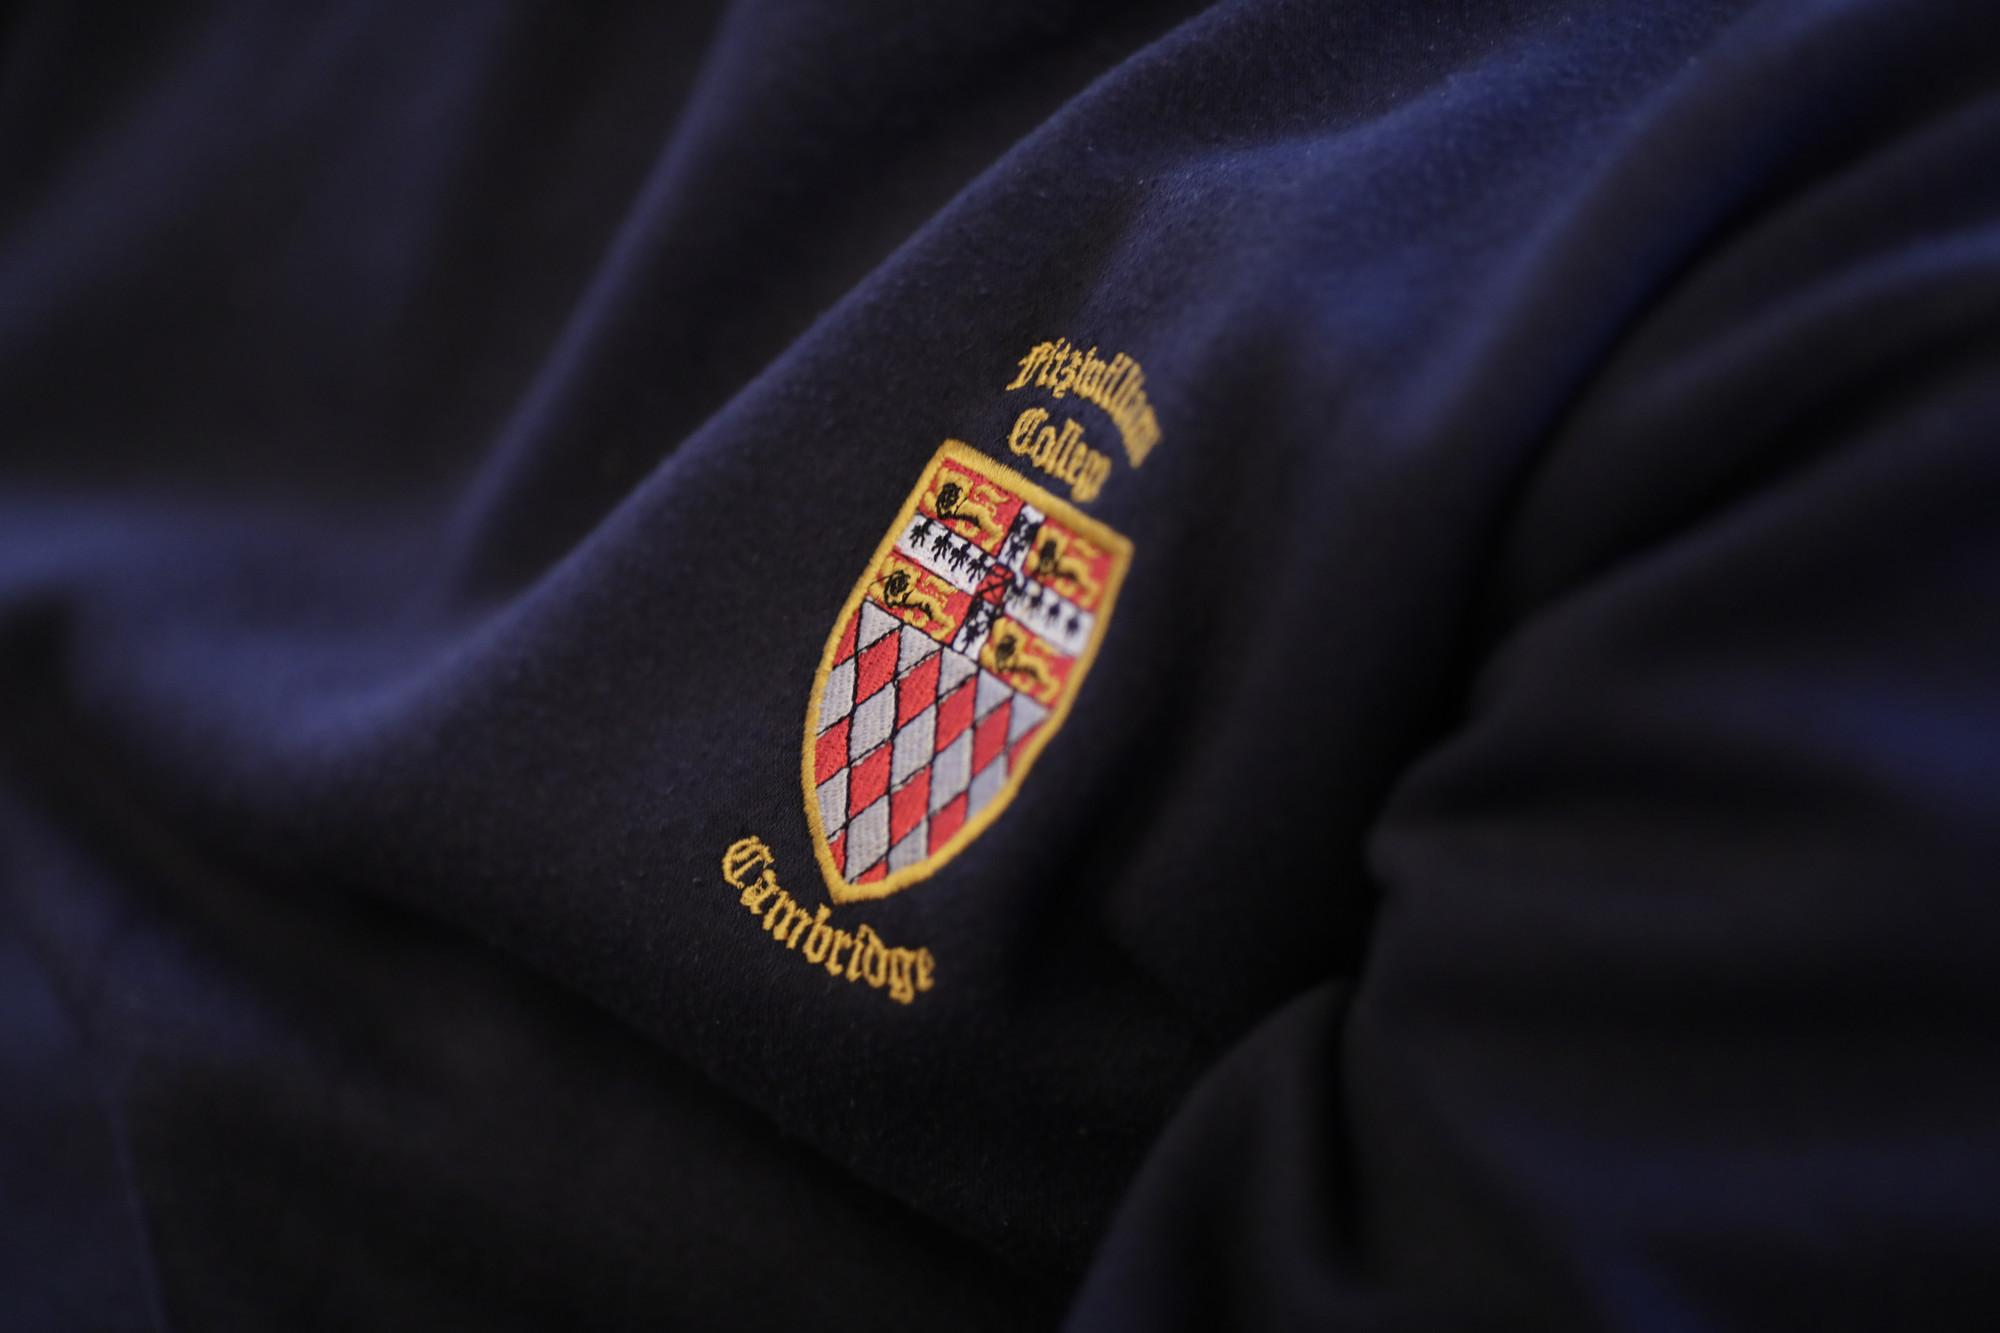 Fitzwilliam College logo on jumper